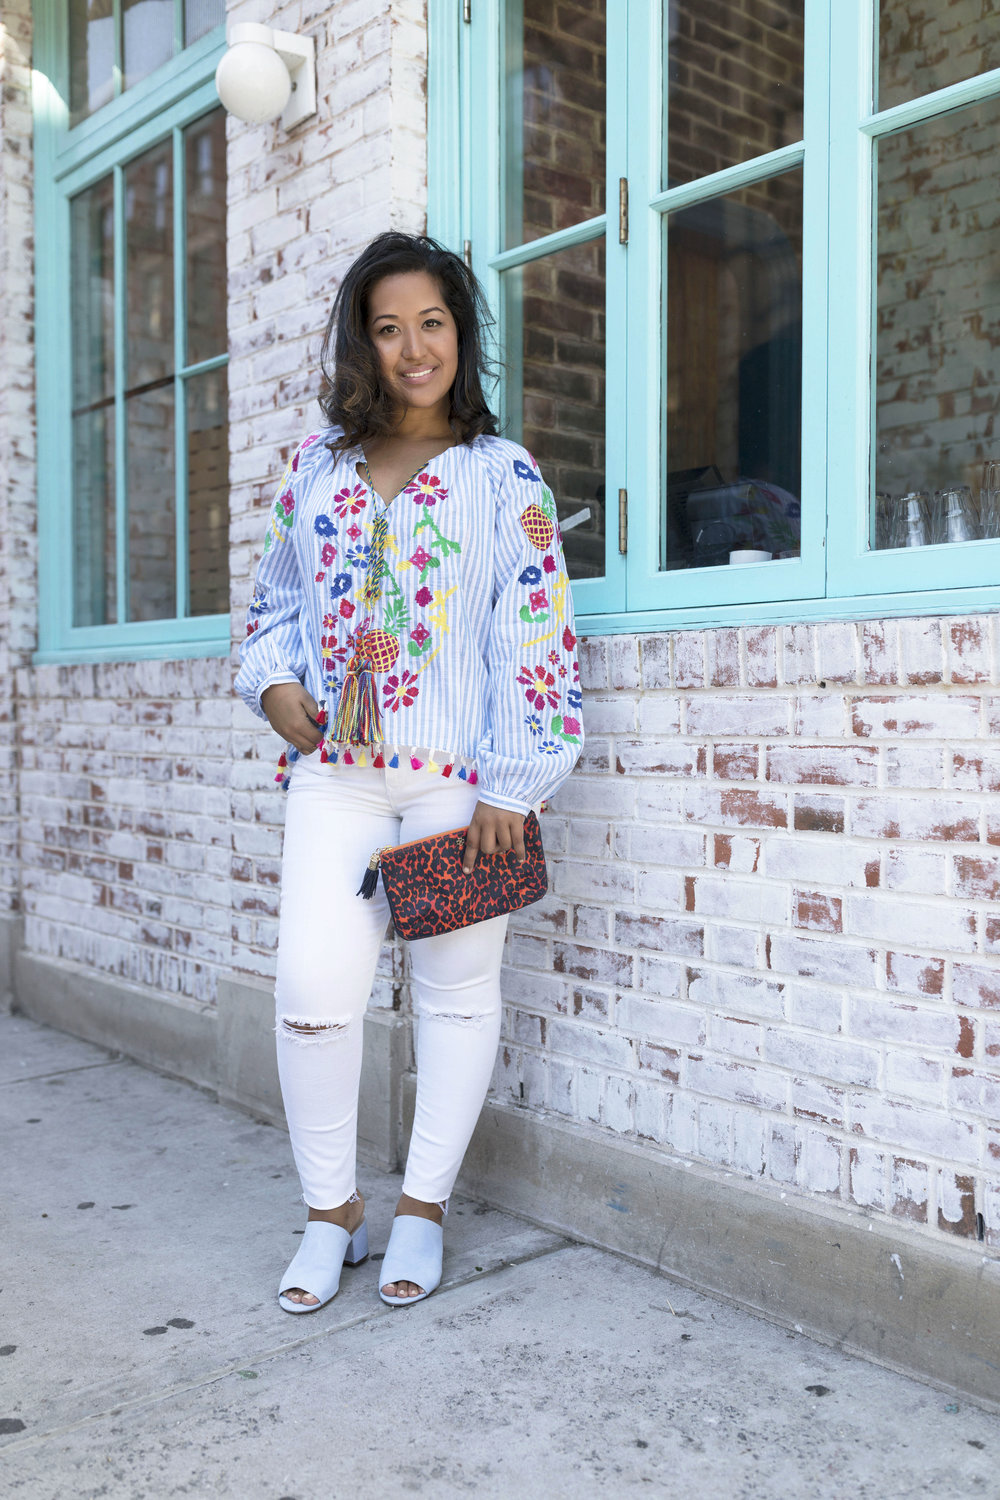 Krity S x Zaful x Stripped Embroidered Blouse